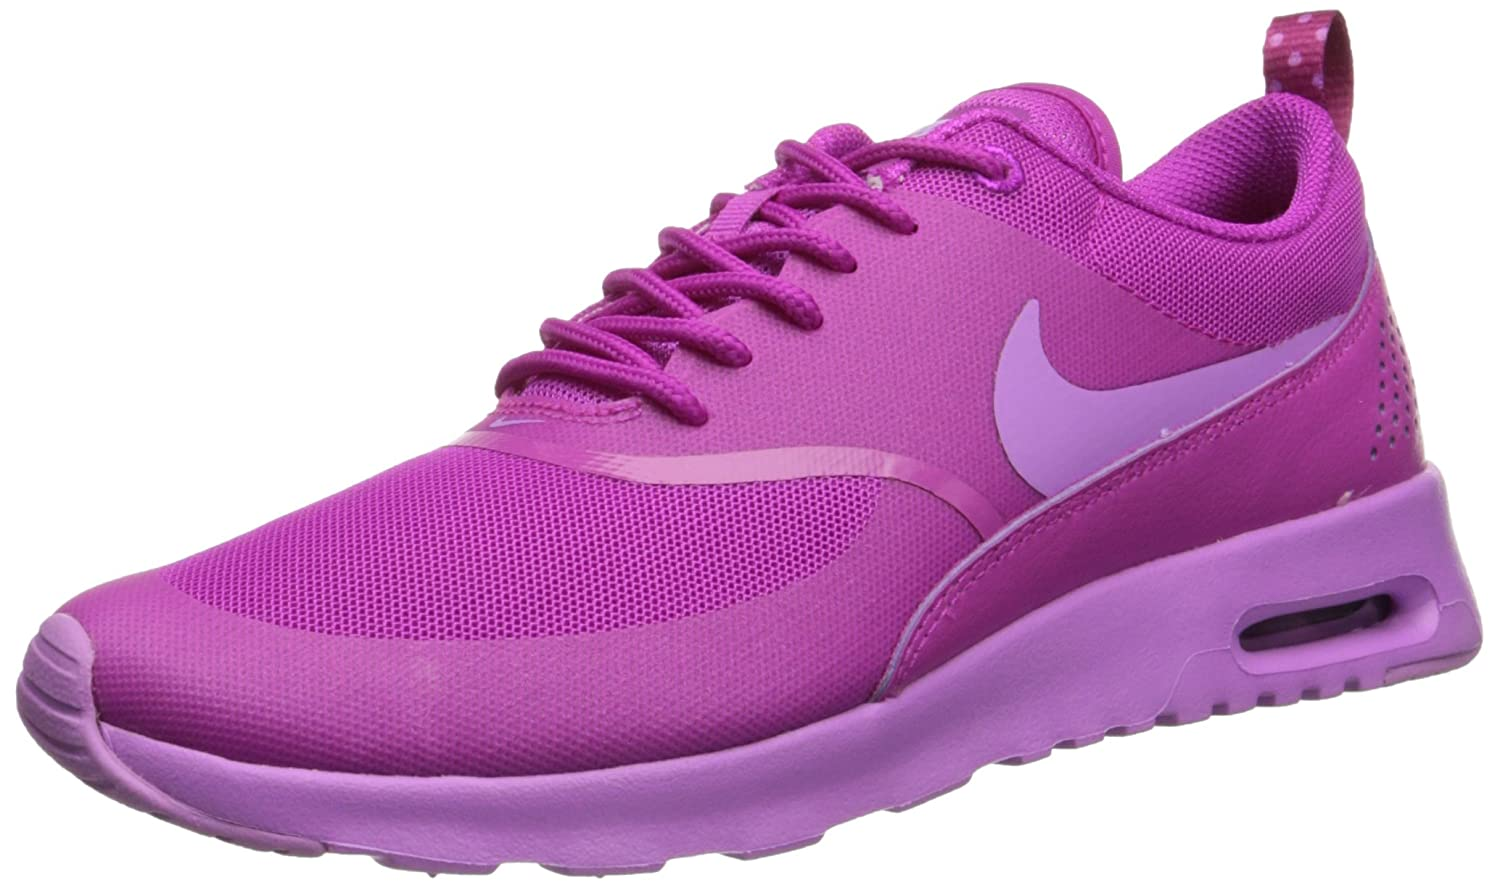 NIKE Women's Air Max Thea Low-Top Sneakers, Black B00MFRUBLY 8 B(M) US|Pink/Fucshia